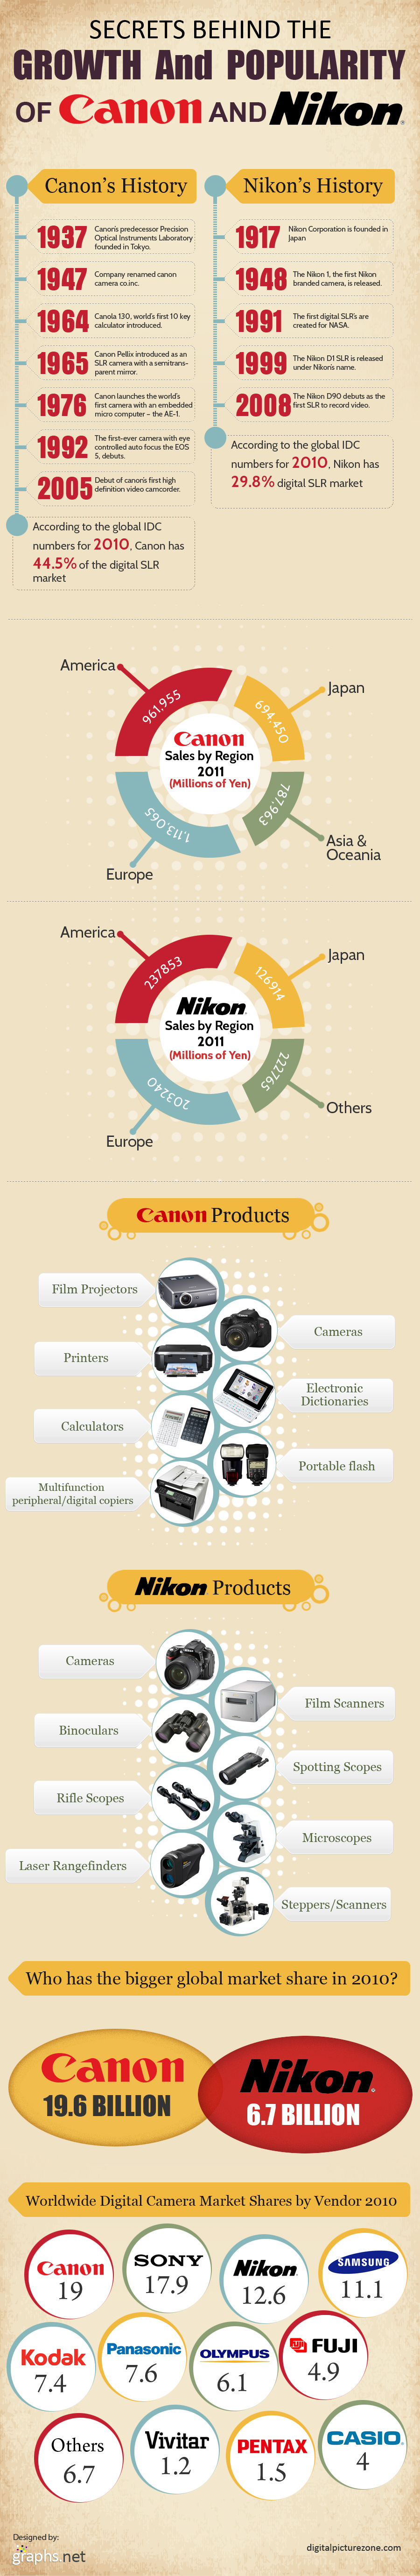 History and Success Factors of Canon and Nikon